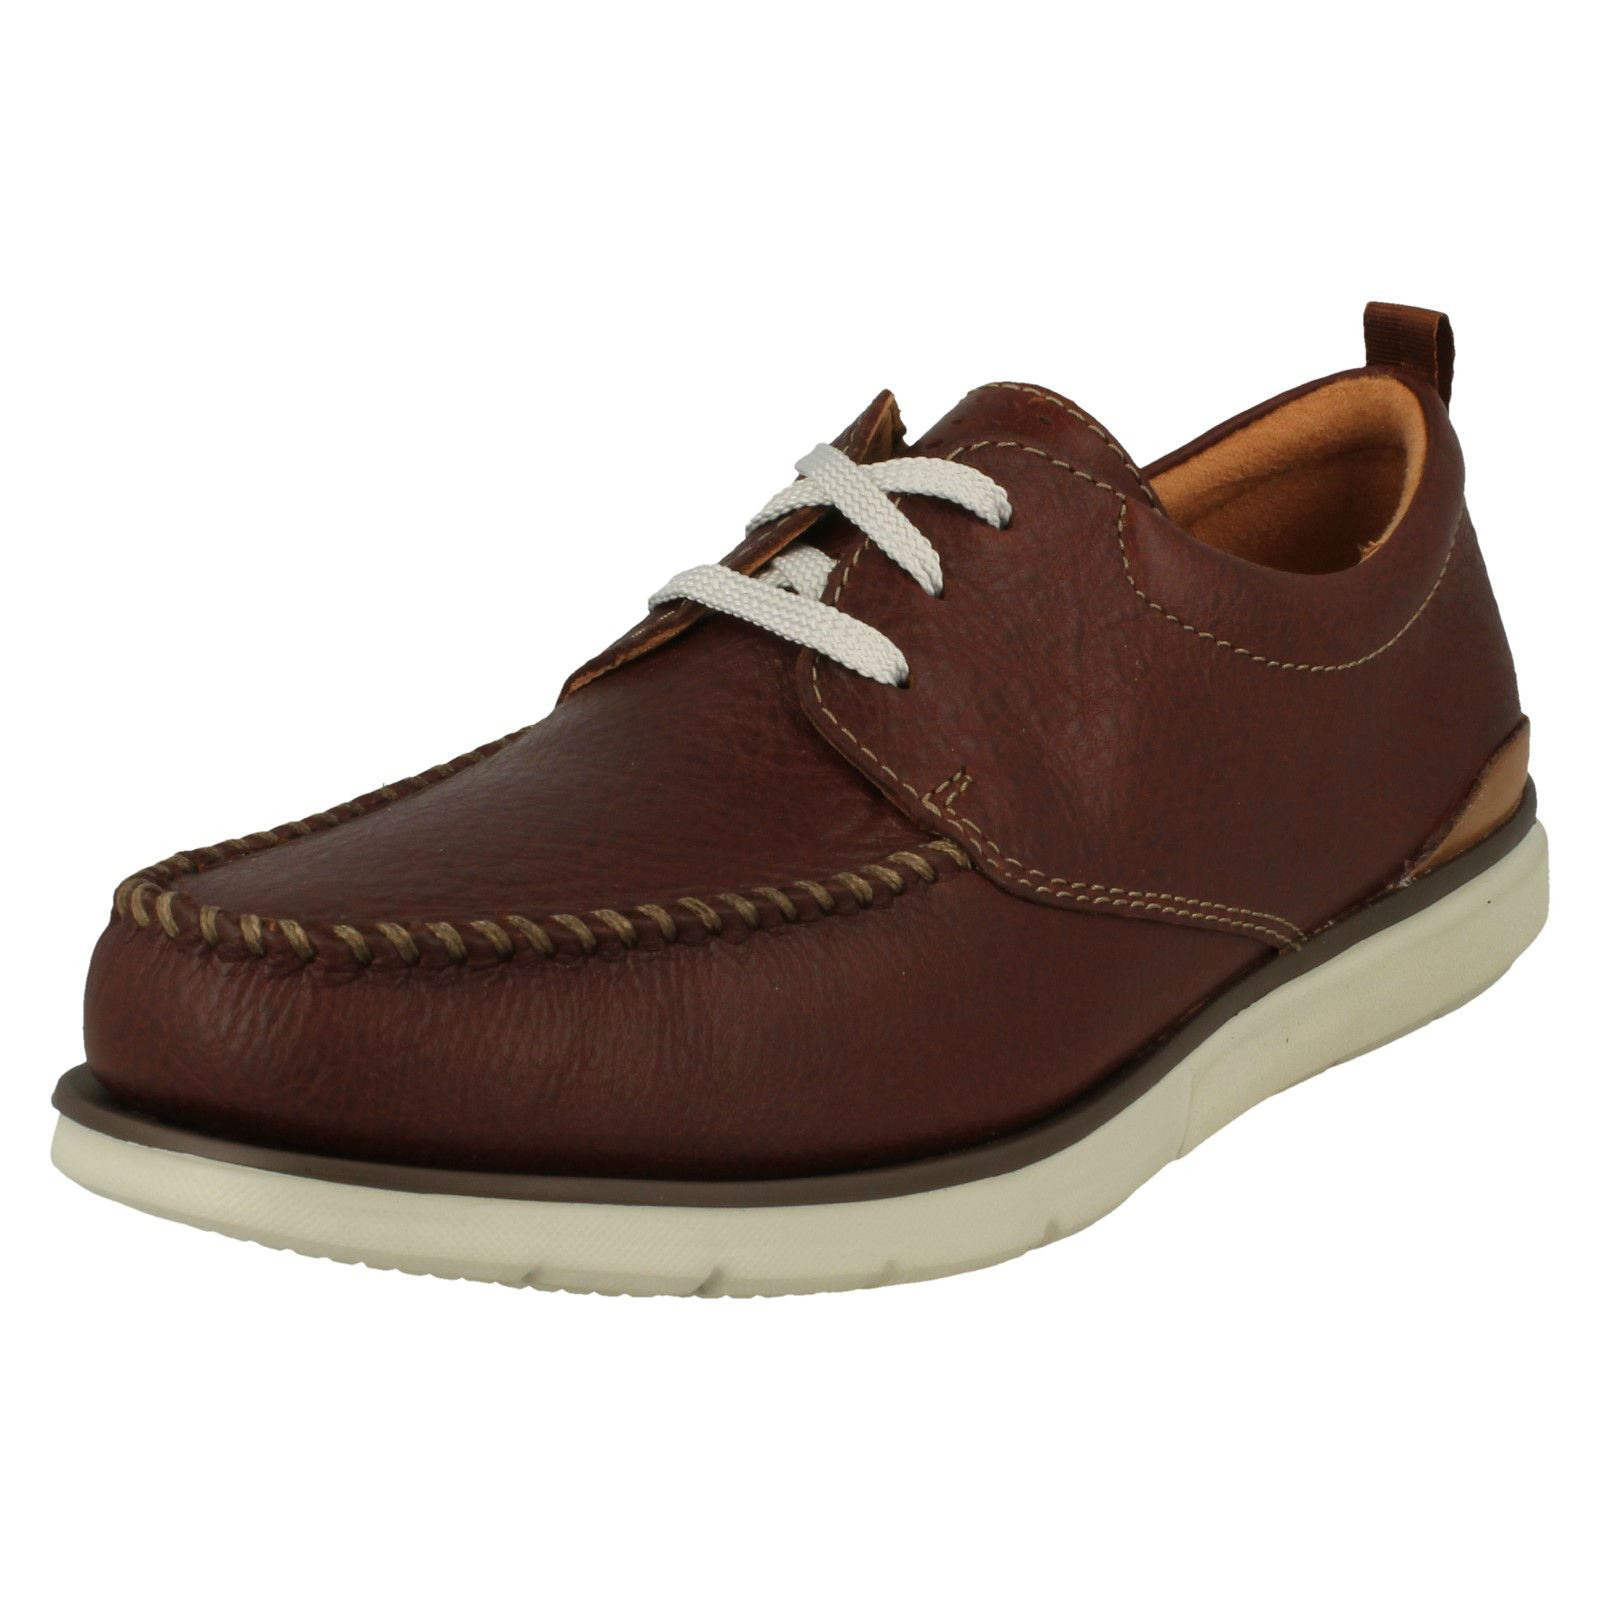 Hombre Clarks Casual Lace Up Zapatos - - - Edgewood Mix b44d78